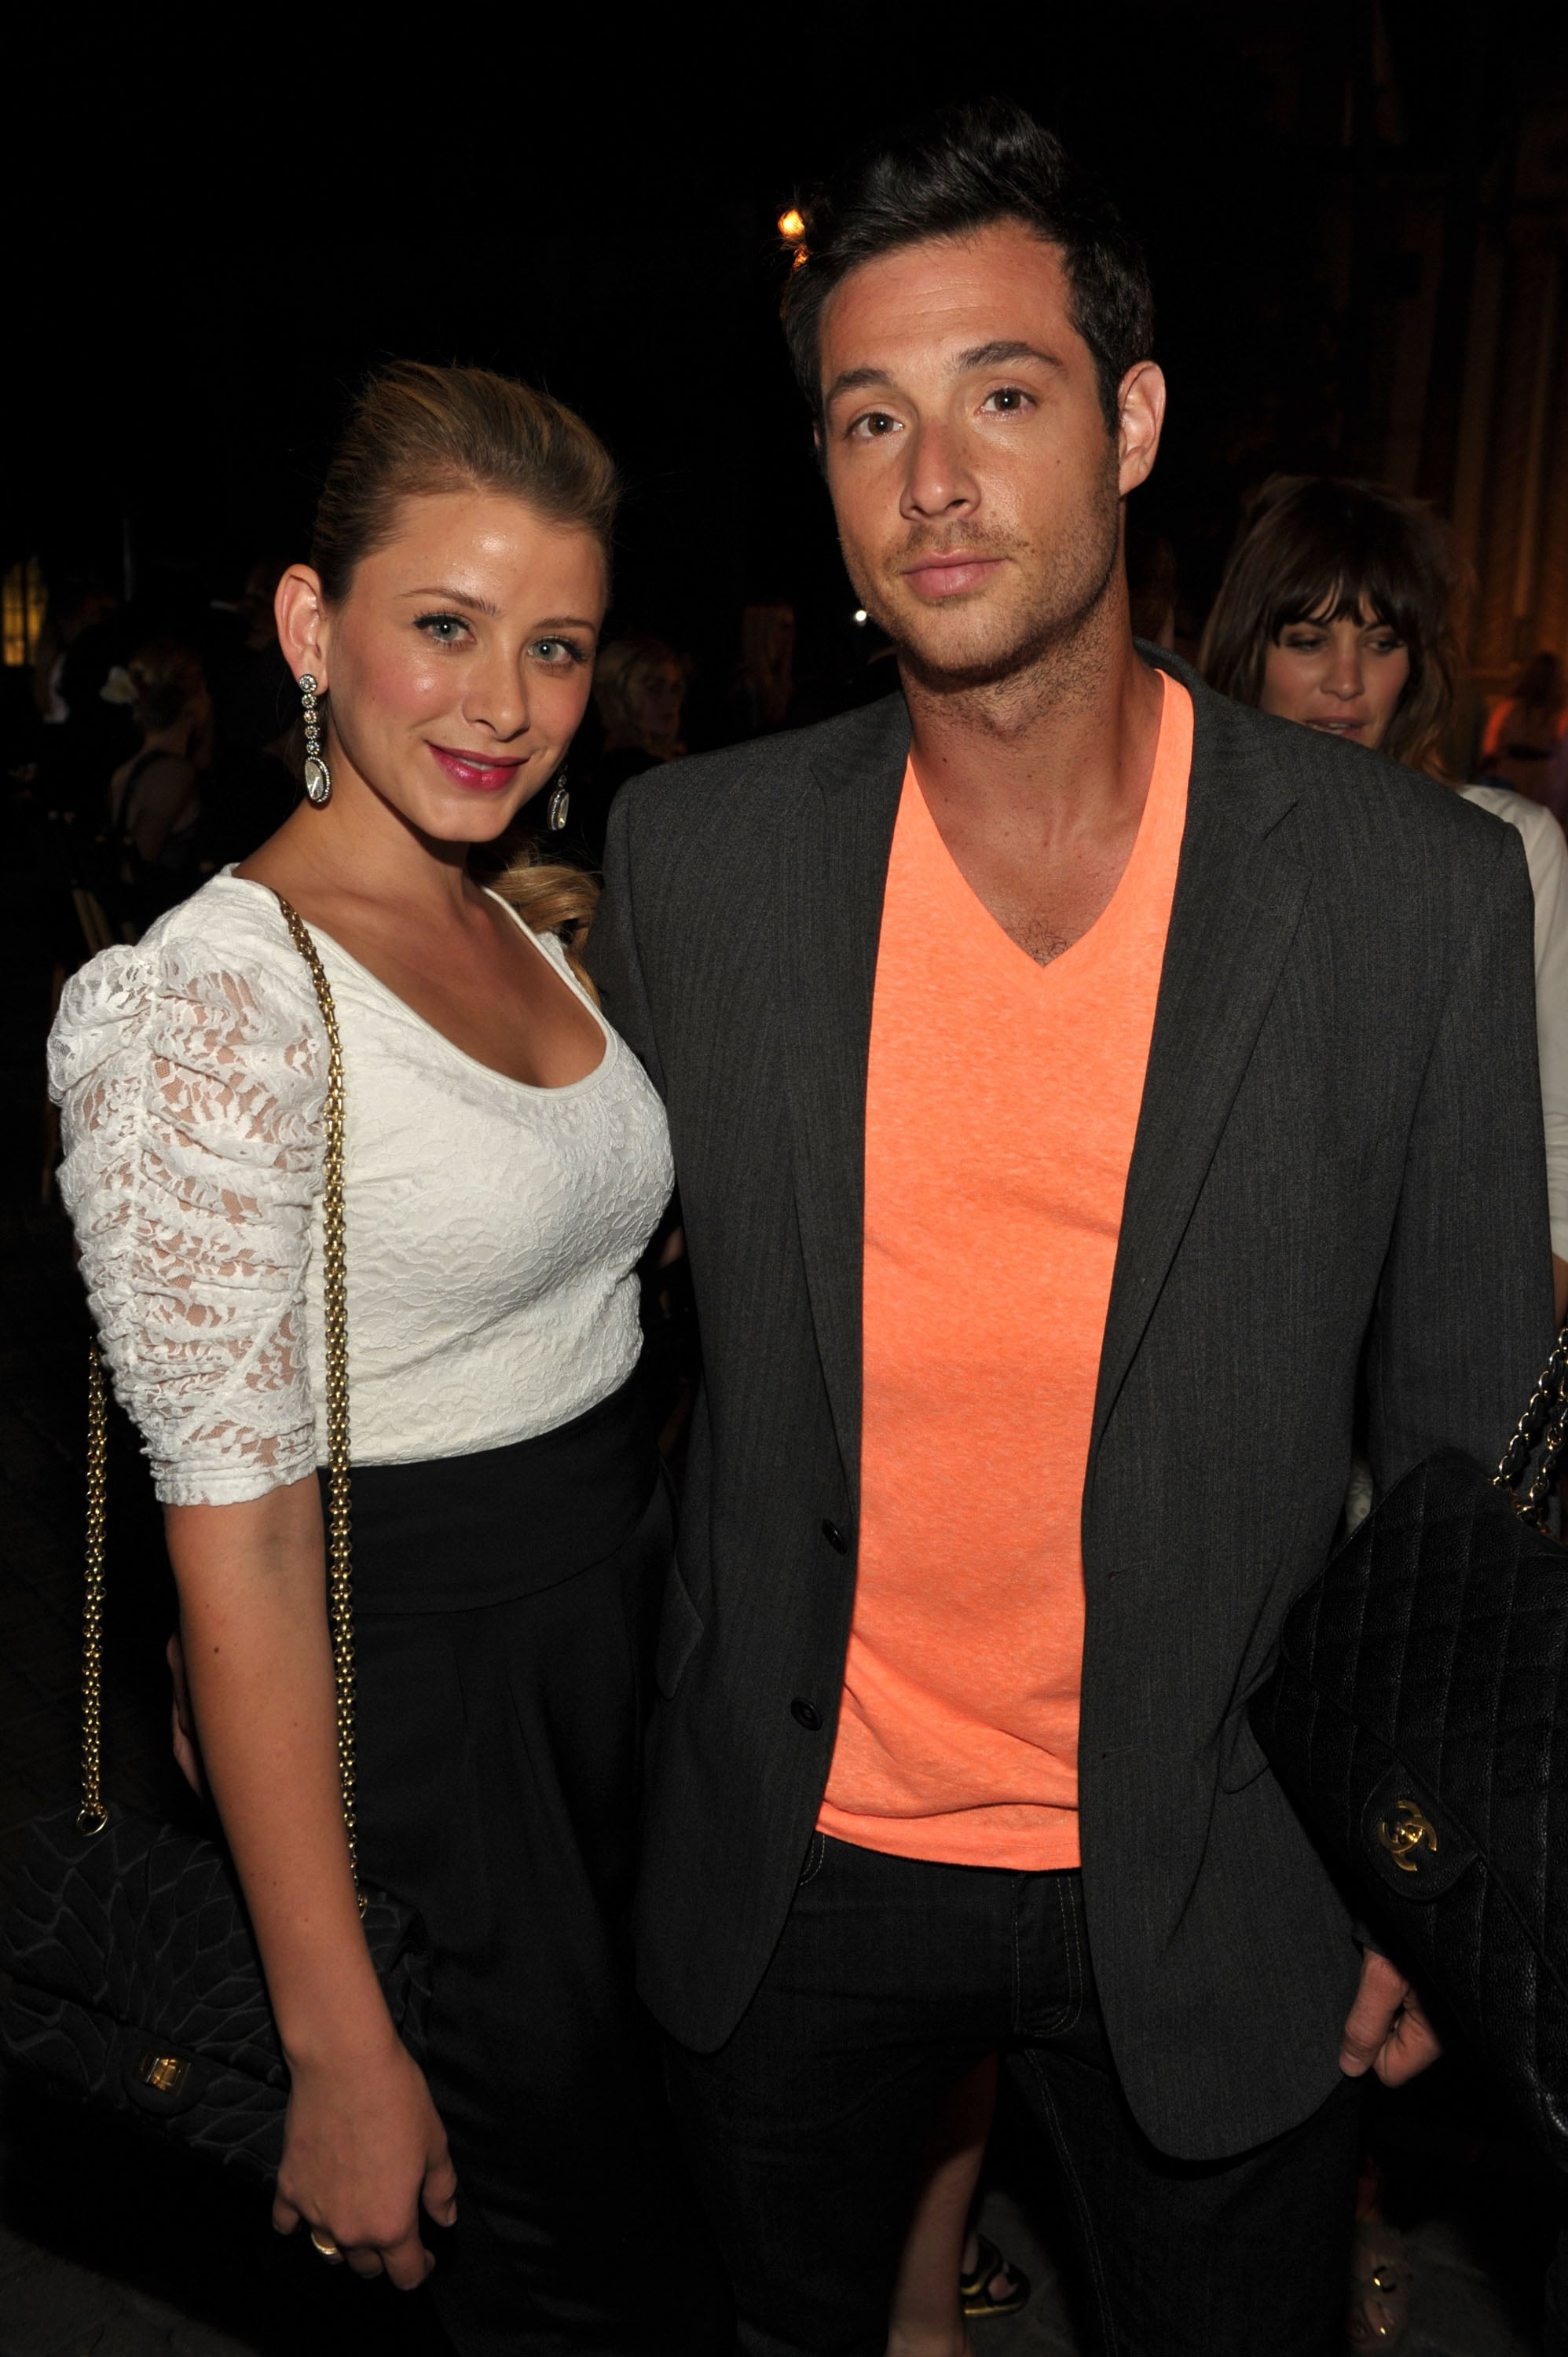 Lo Bosworth And Scott Hochstadt What Happened To The Couples On The Hills We Investigate Popsugar Celebrity Photo 5